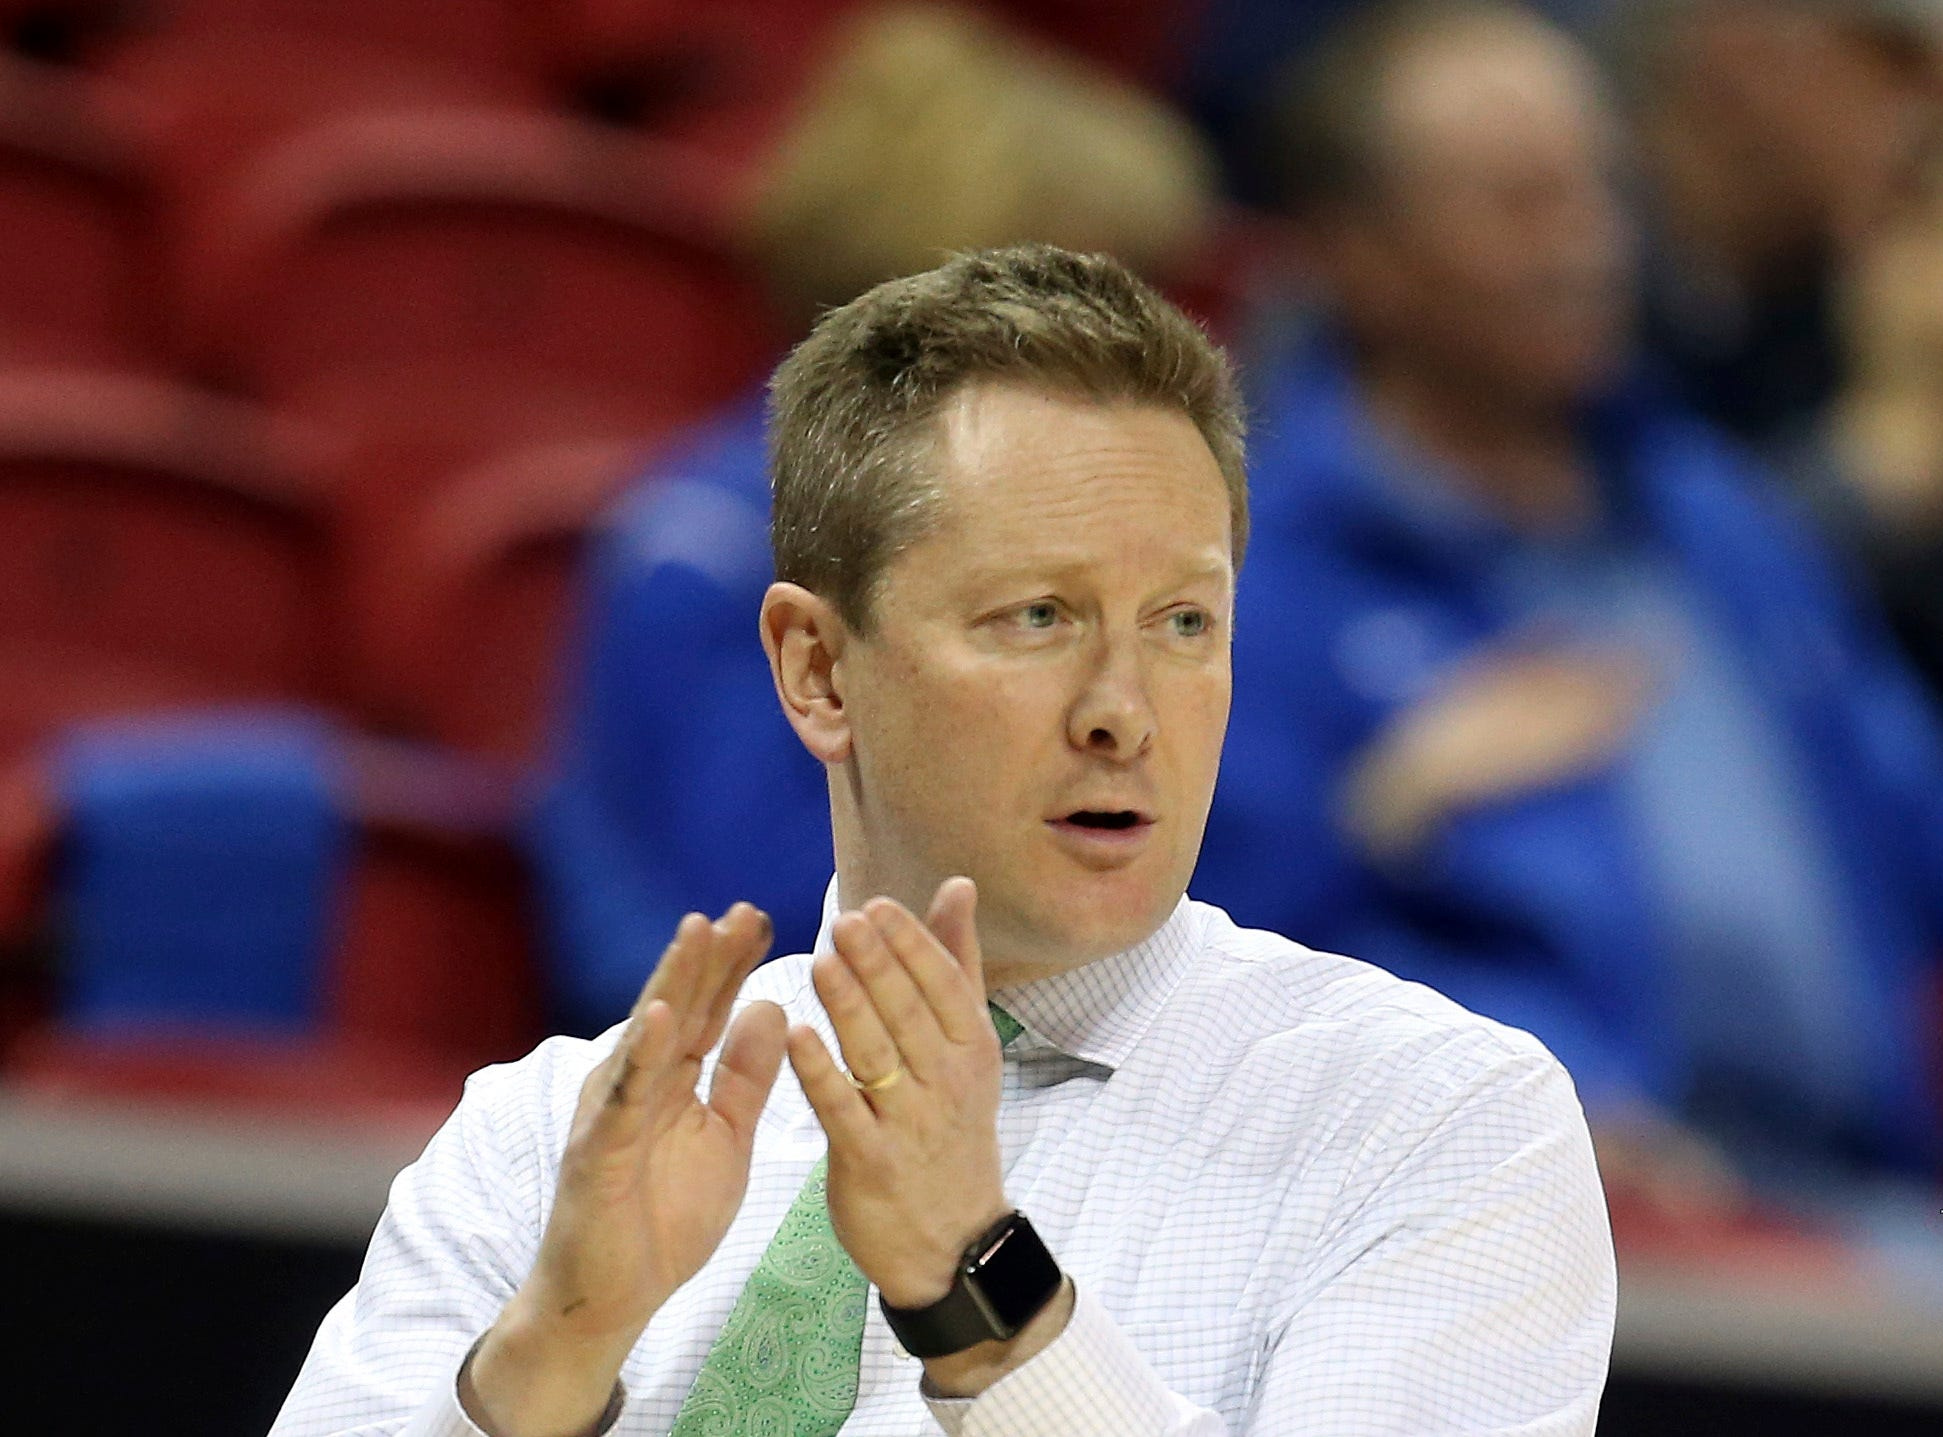 Colorado State head coach Niko Medved instructs his team during the second half of an NCAA college basketball game against Boise State in the Mountain West Conference tournament Wednesday, March 13, 2019, in Las Vegas.